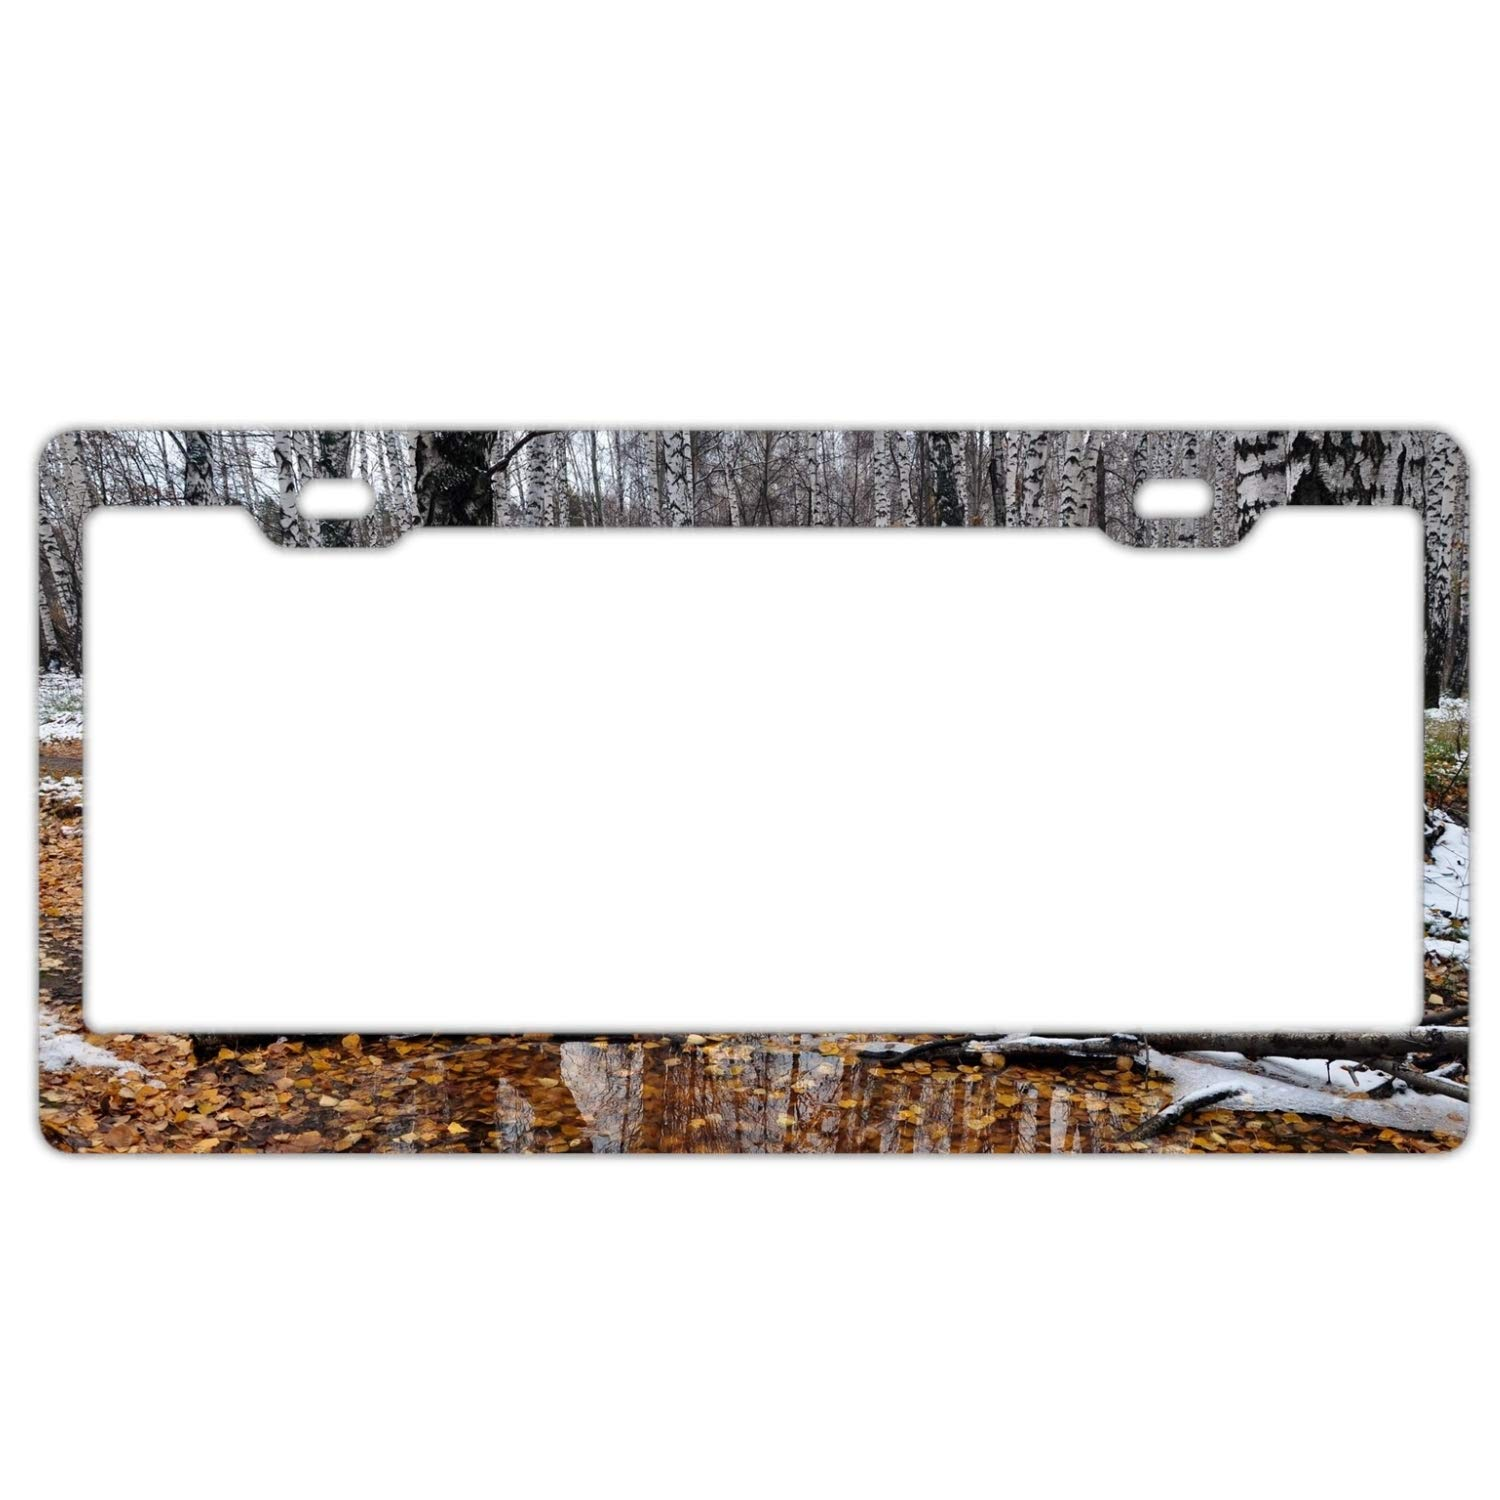 Amazon com: Imtailang Moss Metal Novelty License Plate Tag